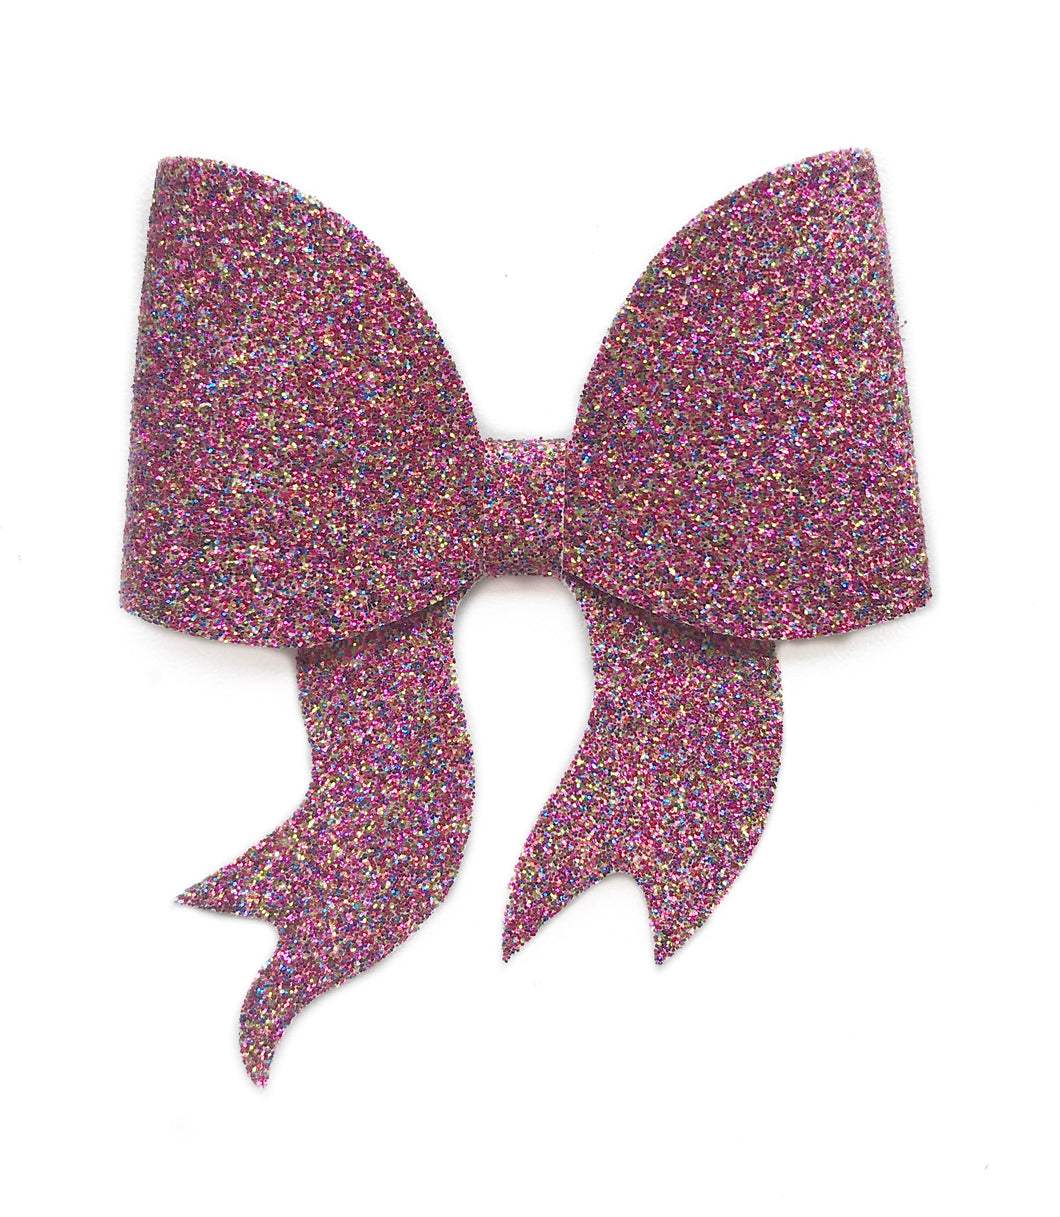 Lara- Pink Mixed glitter bow, leatherette bow, fringe clip, butterfly bow, personalised bow, rainbow bow, dolly hair bow, floral bow, shimmer bow, pretty bow , Bow Handmade Hairbow, handmade hair accessories, Sweet Adalyn Sweet Adalyn